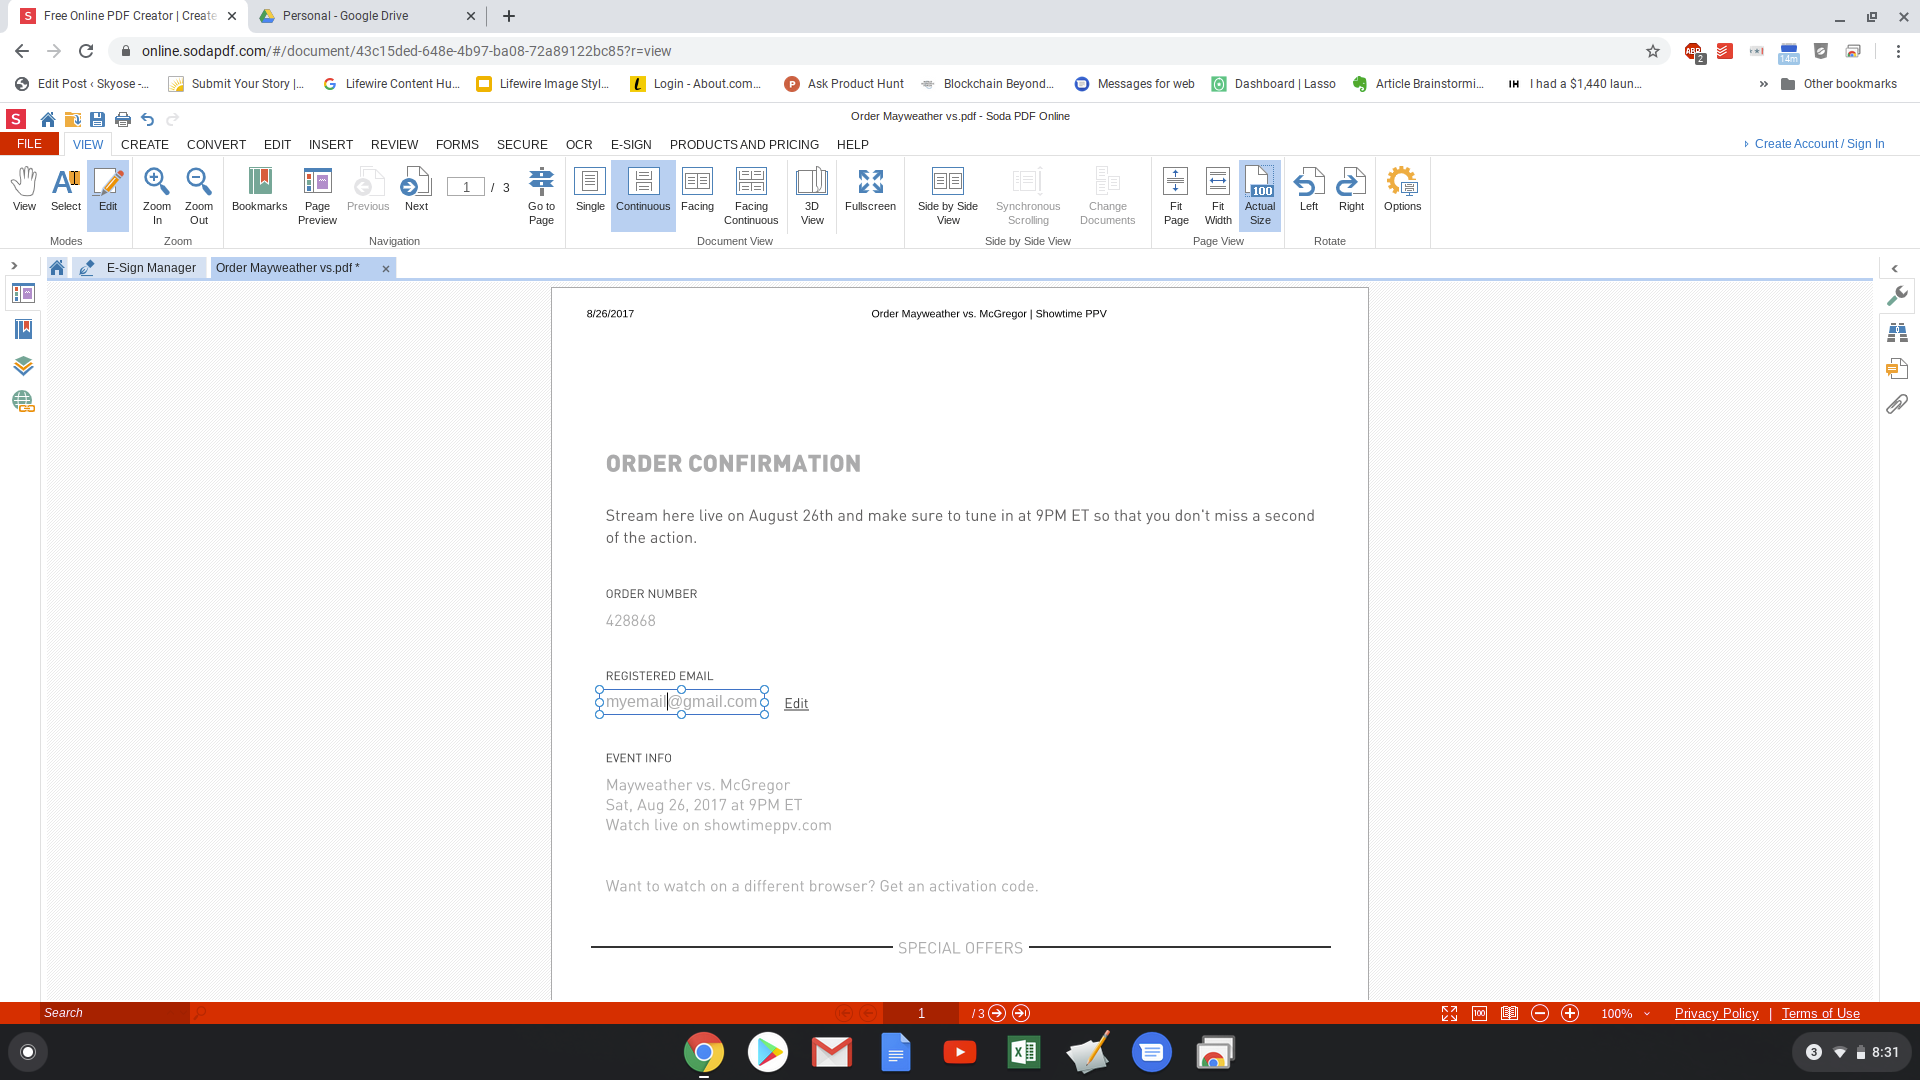 How To Edit A Pdf On Chromebook Finding unwanted blank pages in your google docs happens sometimes, especially when working with documents that originated from another source. how to edit a pdf on chromebook